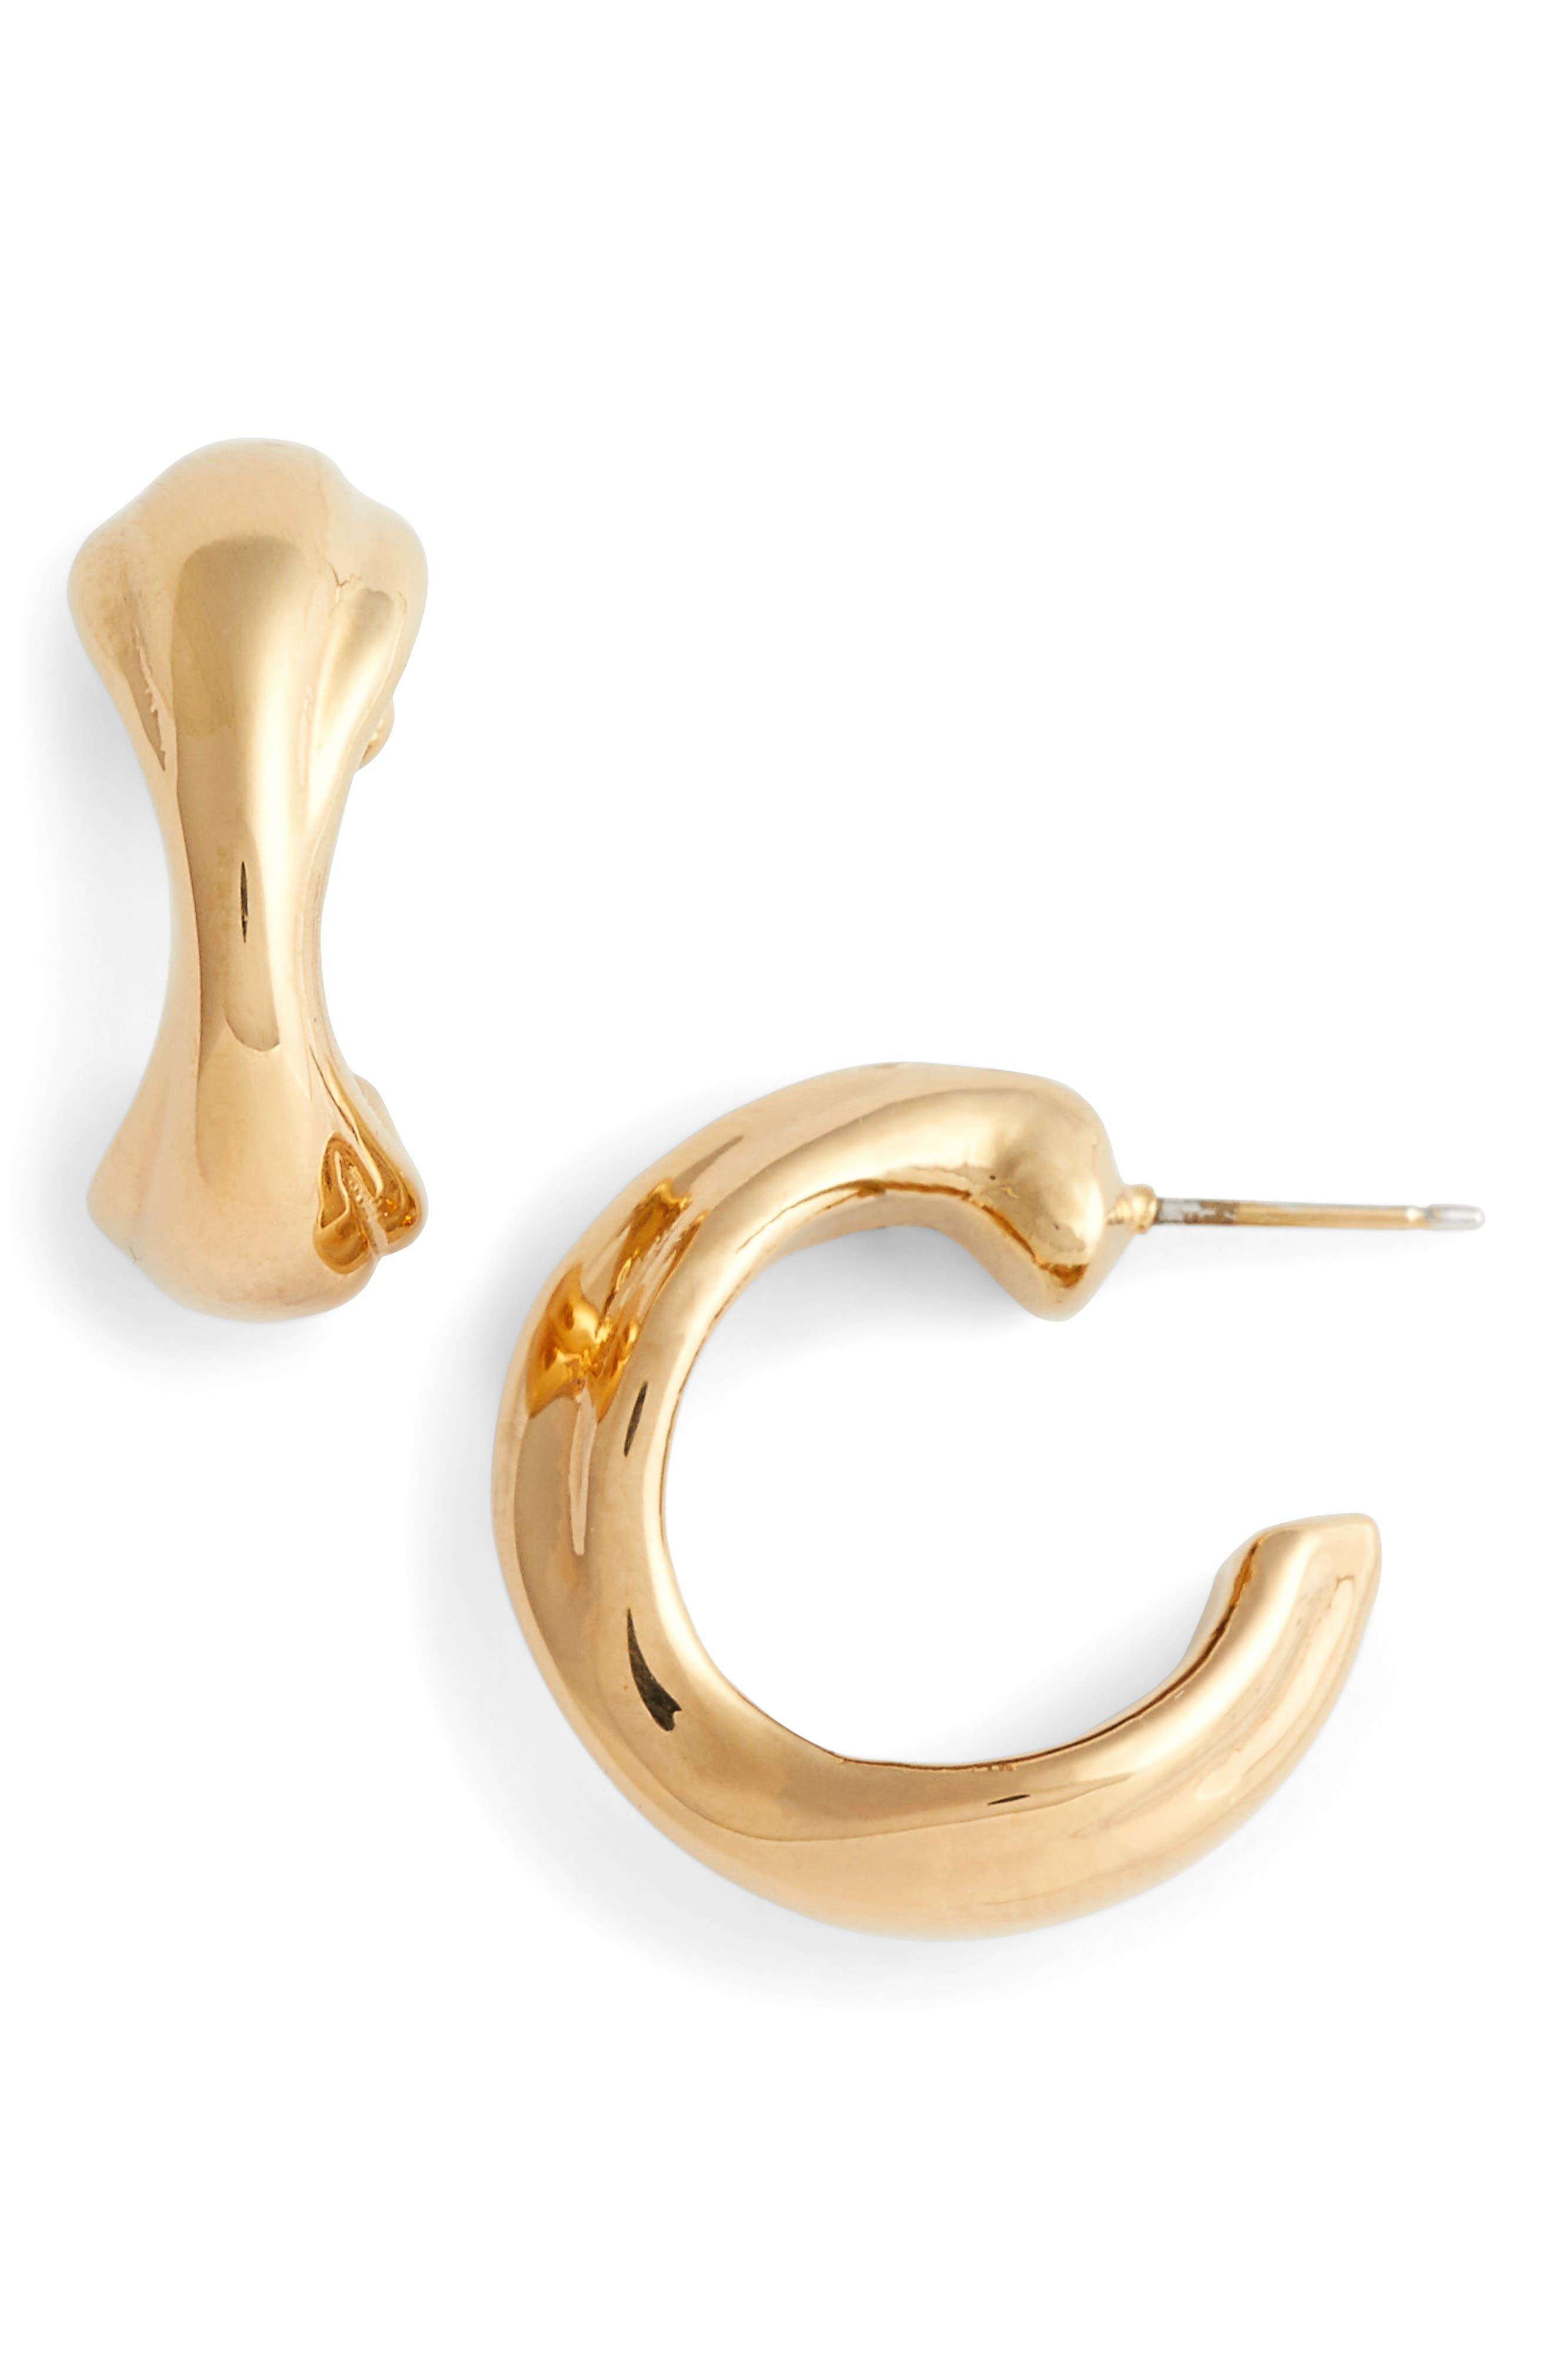 Simon Sebbag Mini Curved Vermeil Hoop Earrings